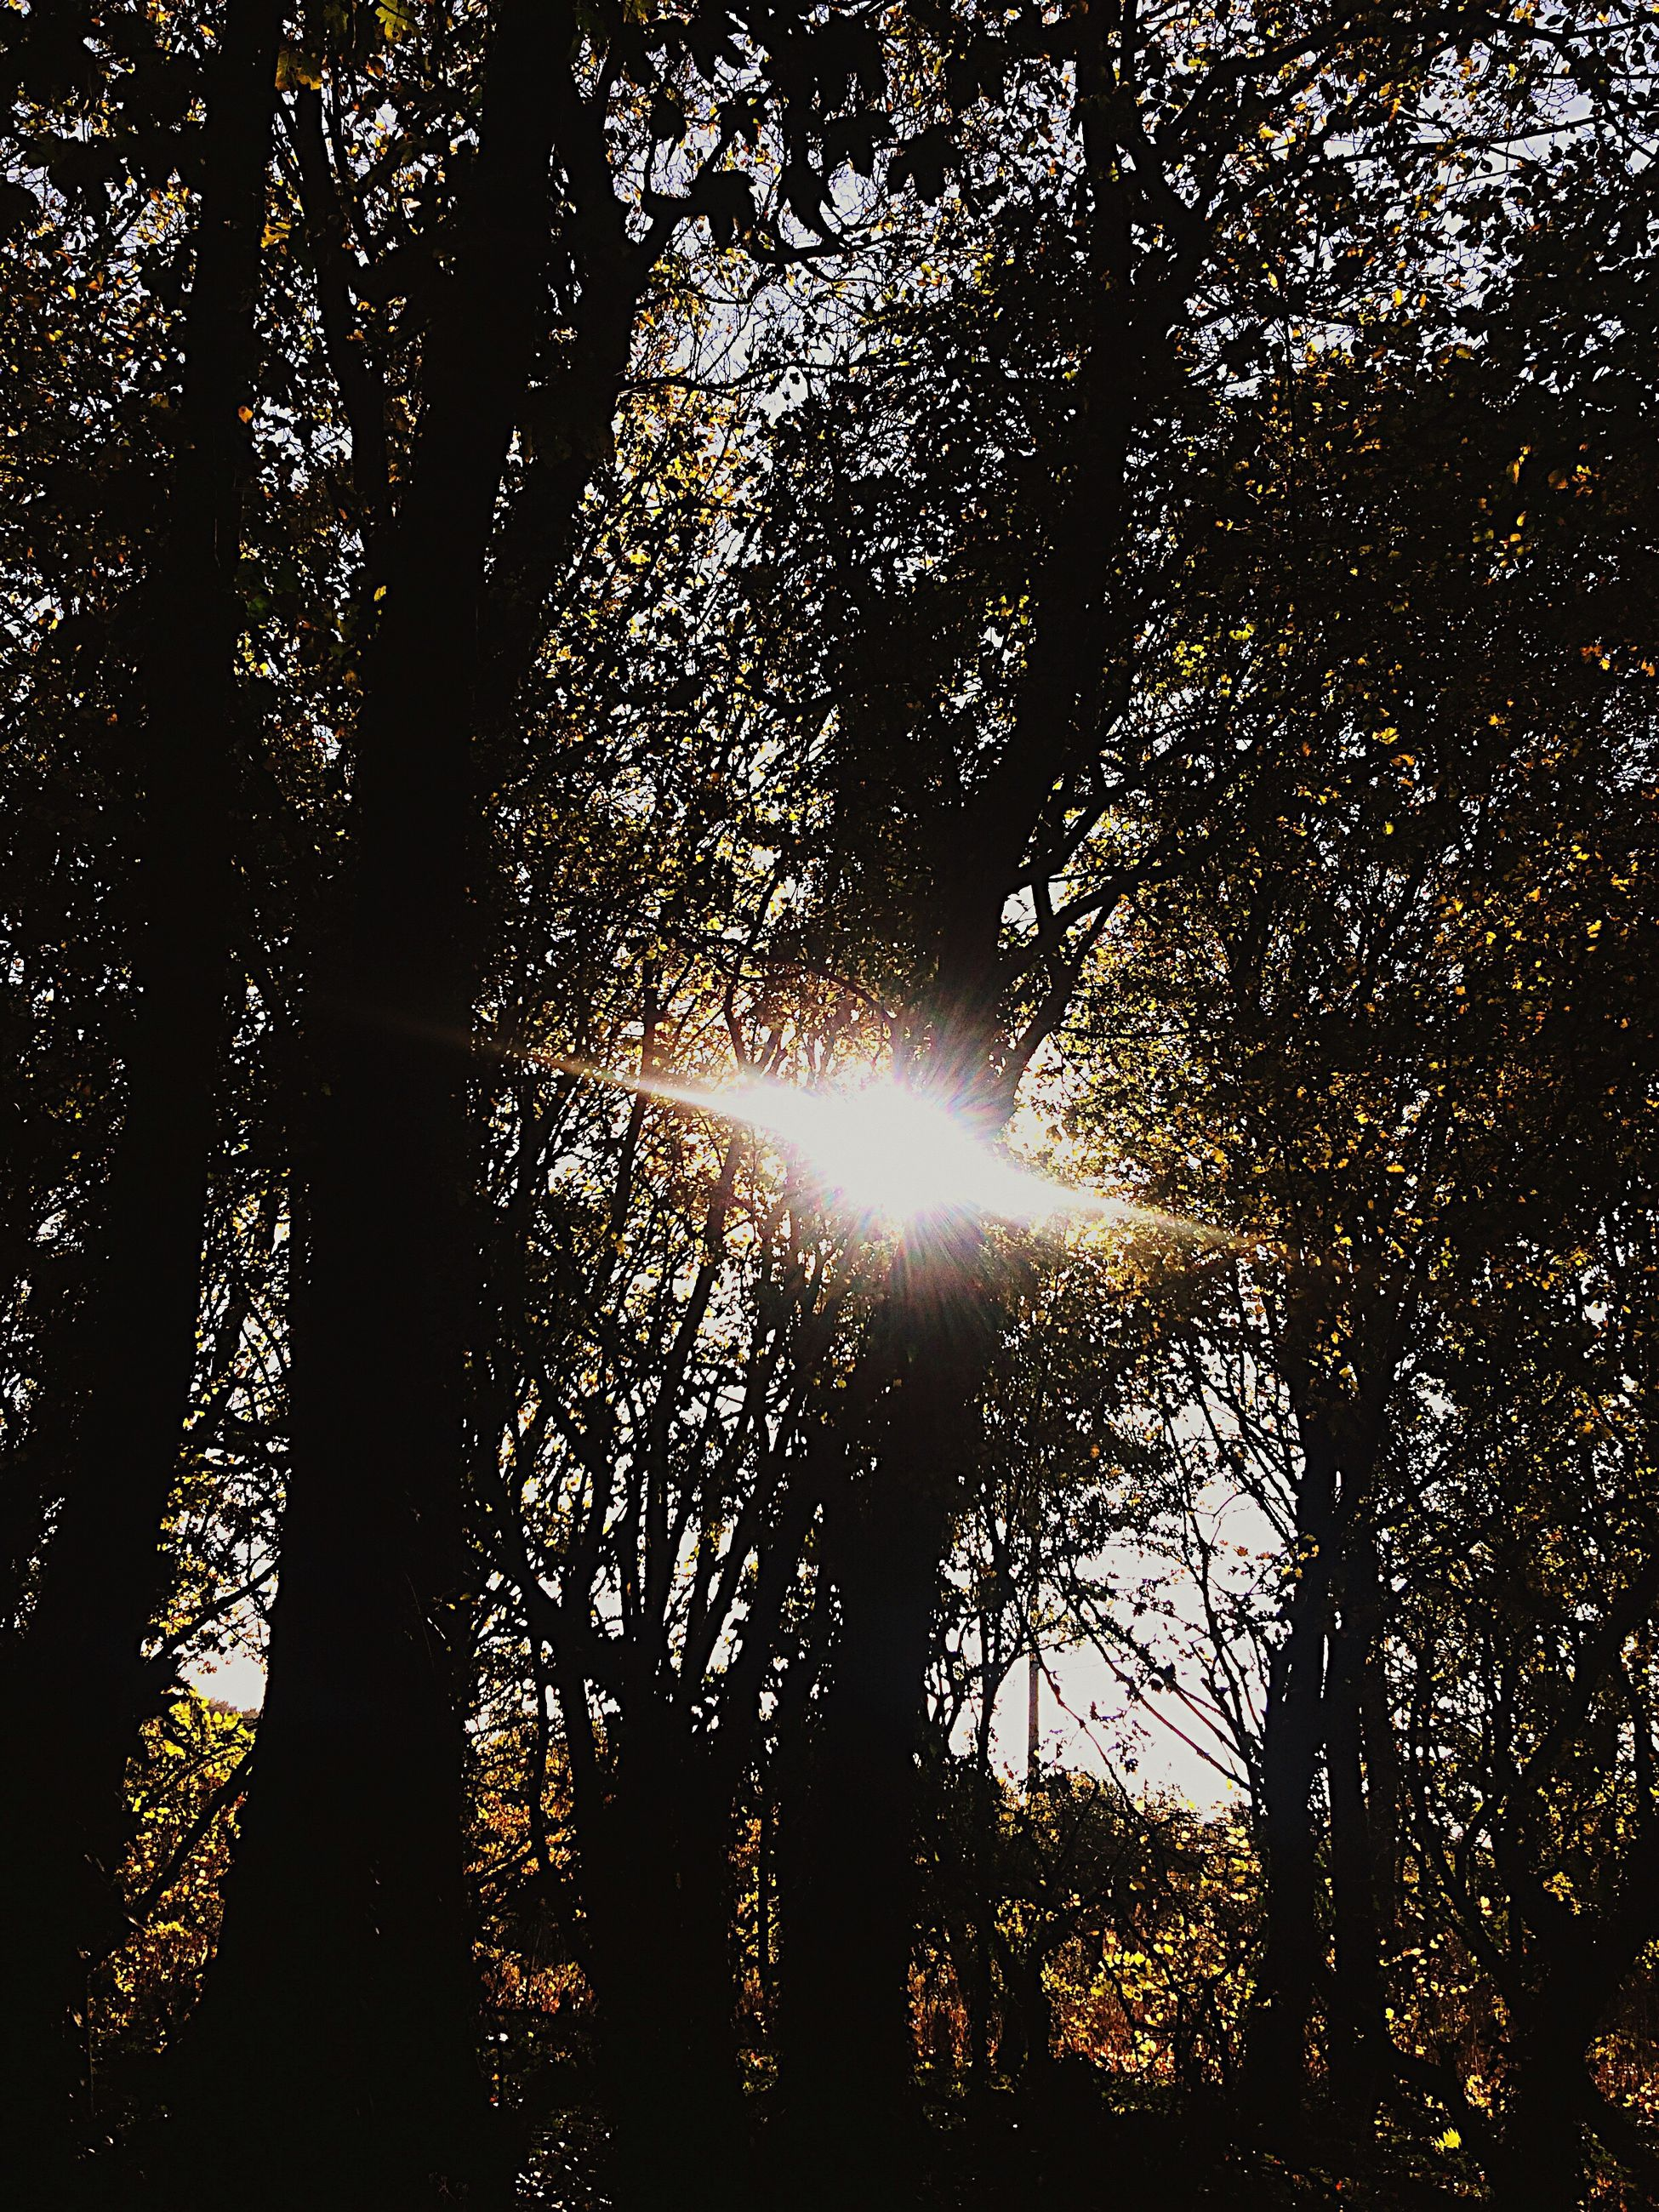 sunbeam, no people, nature, low angle view, sky, beauty in nature, outdoors, illuminated, refraction